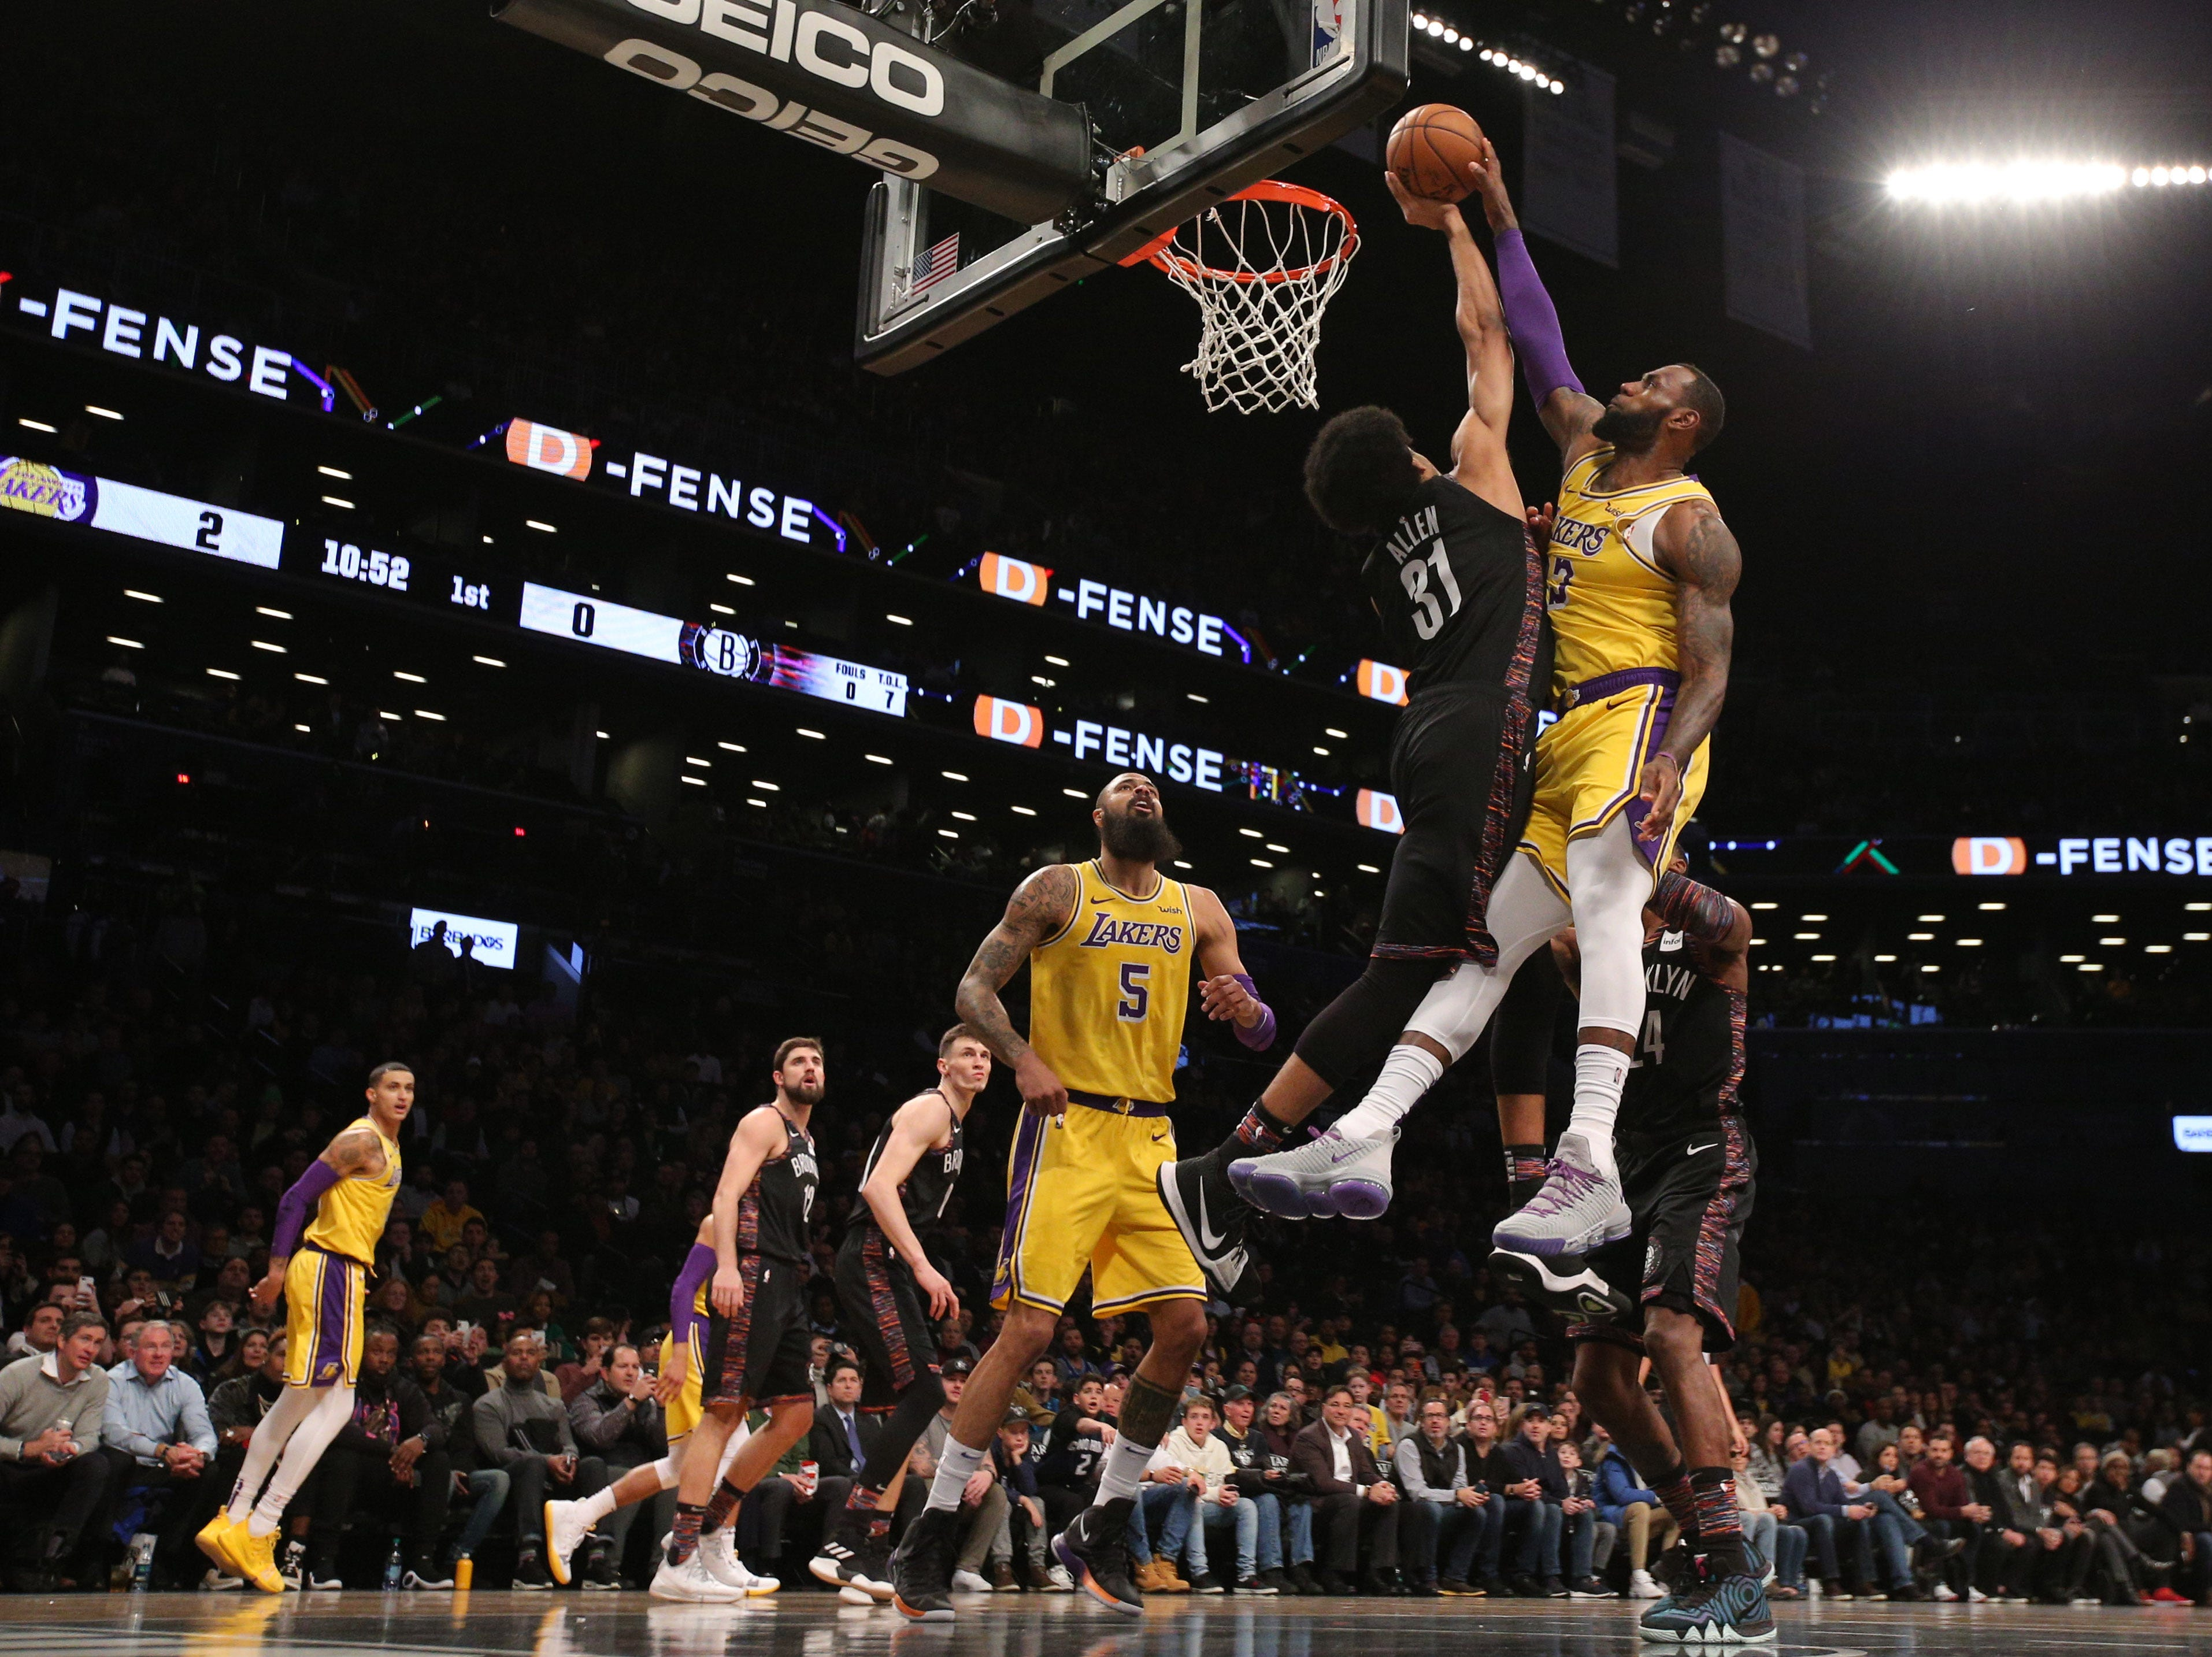 Dec. 18: Brooklyn Nets center Jarrett Allen (31) blocks a shot by Los Angeles Lakers forward LeBron James (23) during the first quarter at Barclays Center.